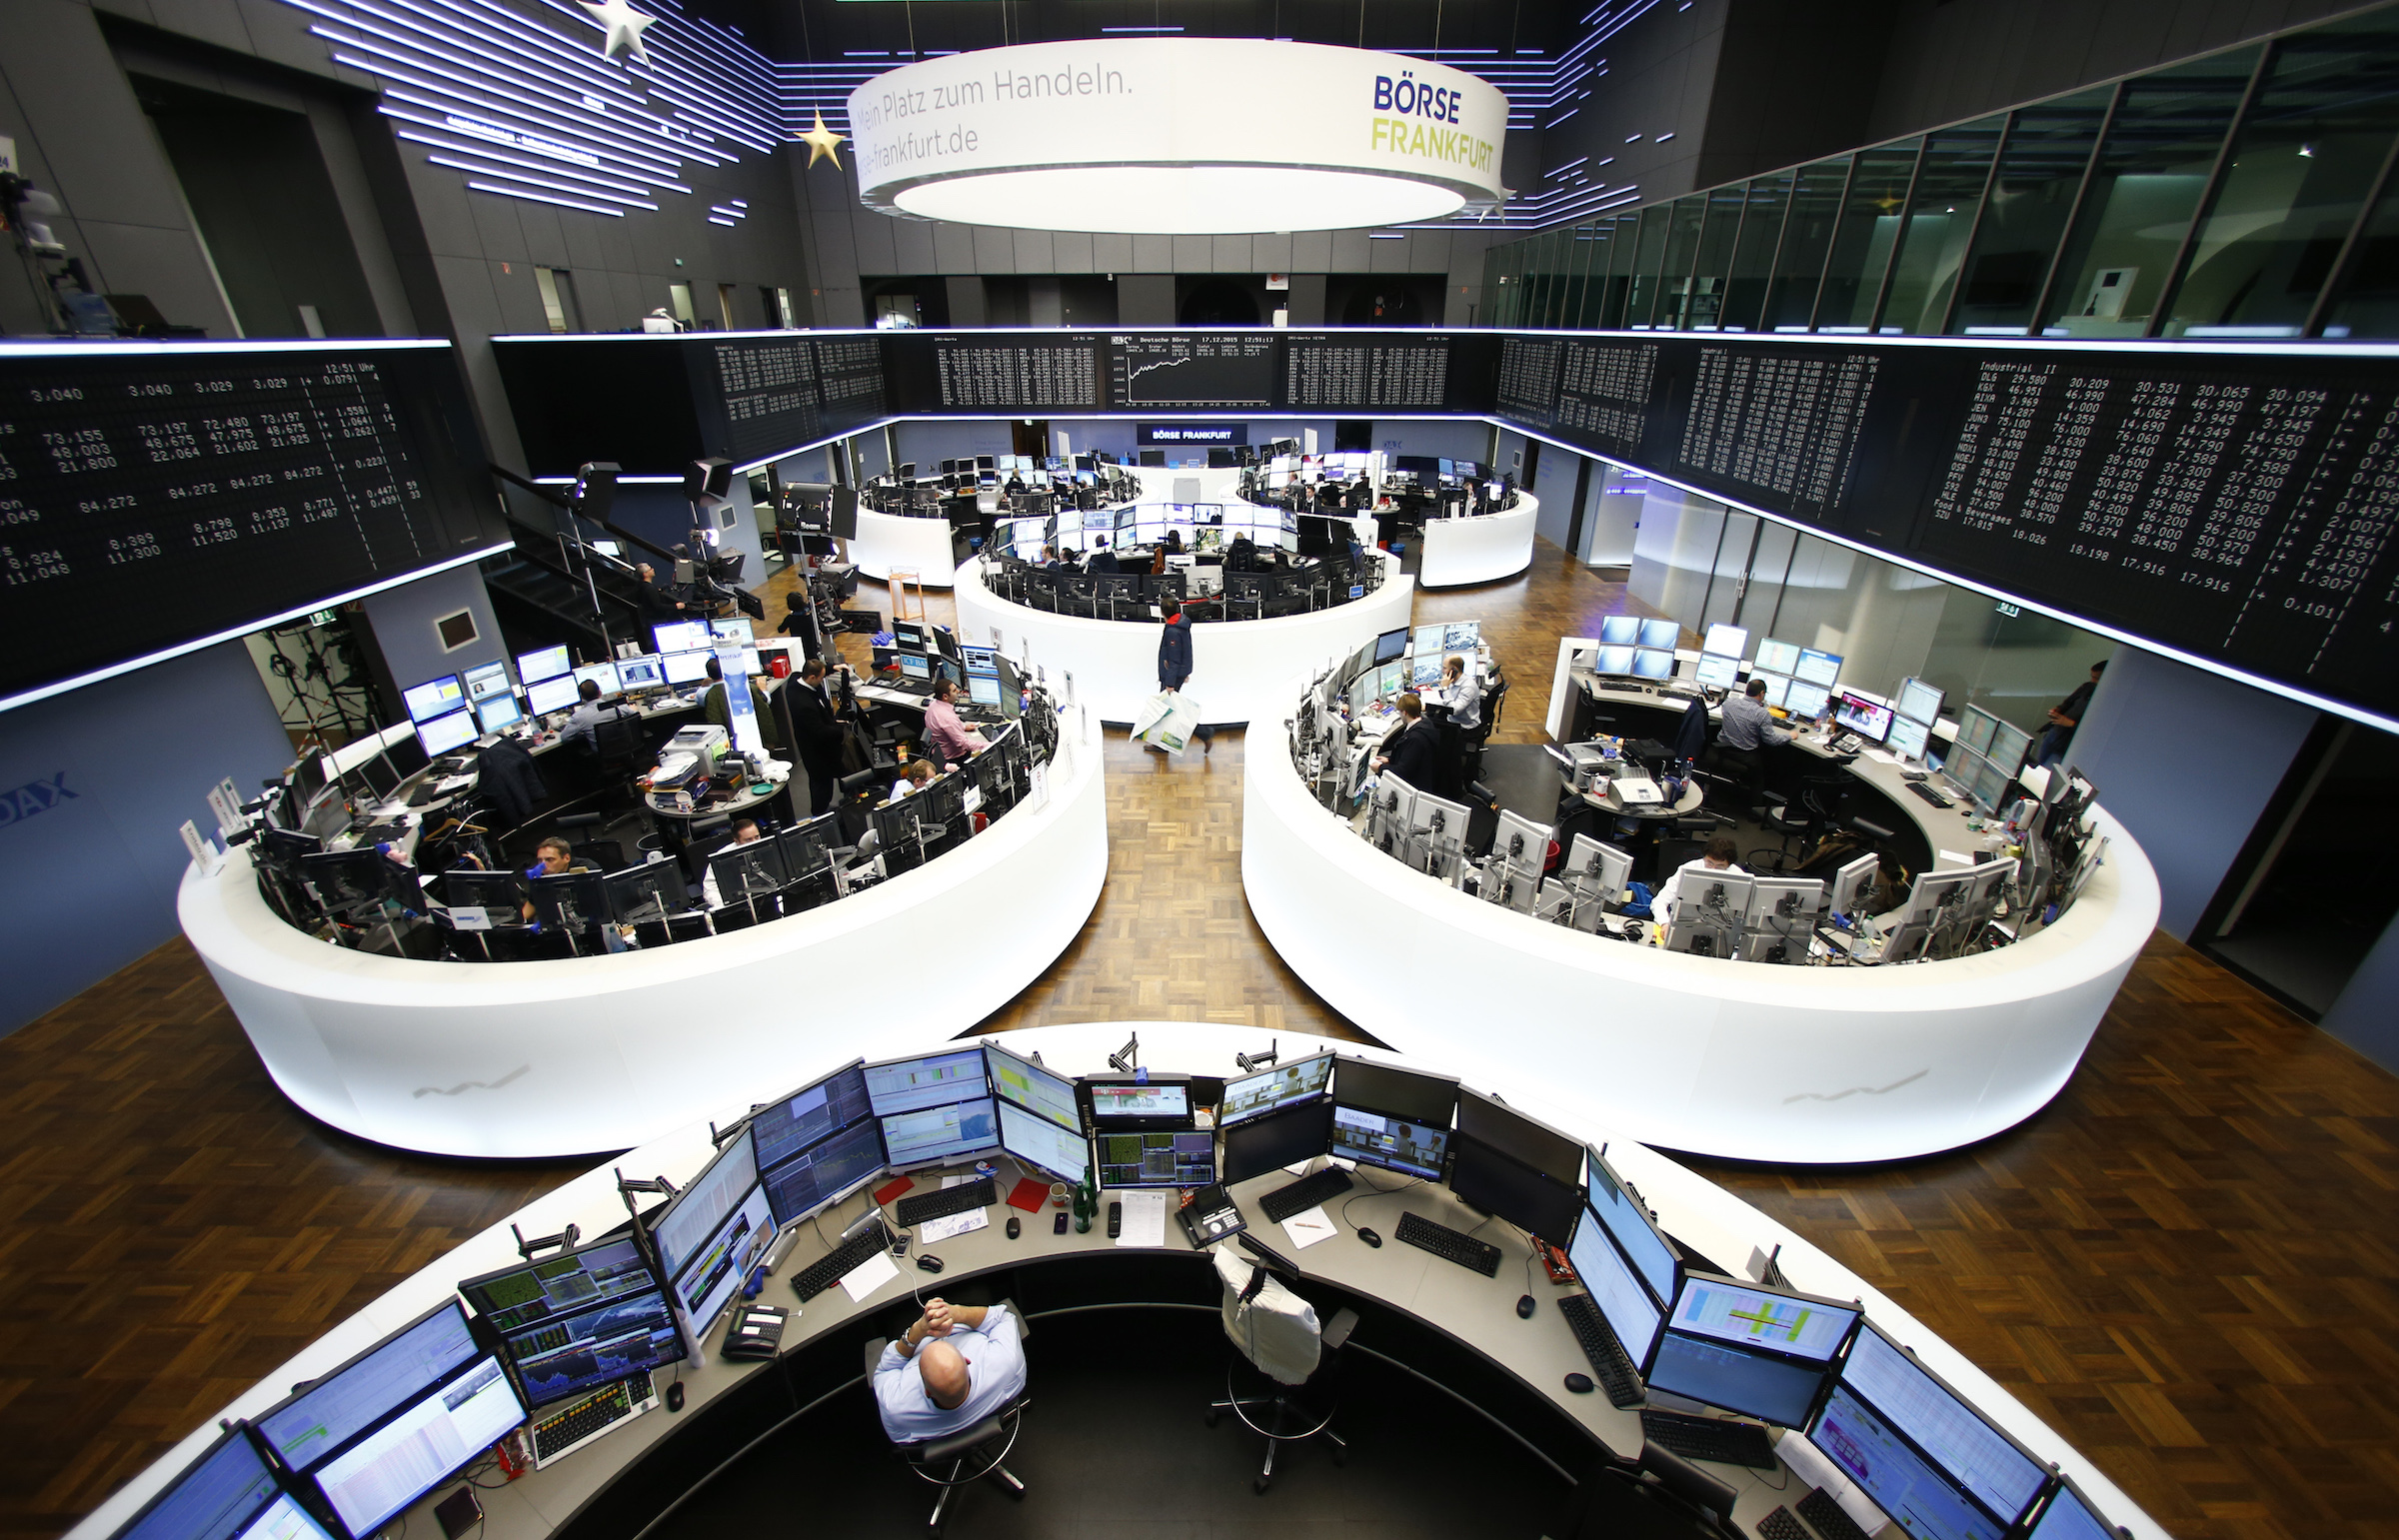 A general view of the trading floor of Frankfurt stock exchange in Frankfurt,, Germany, December 17, 2015. European shares surged on Thursday as investors took the U.S. Federal Reserve's interest rate rise and the prospect of further tightening as a sign of confidence in the world's biggest economy.